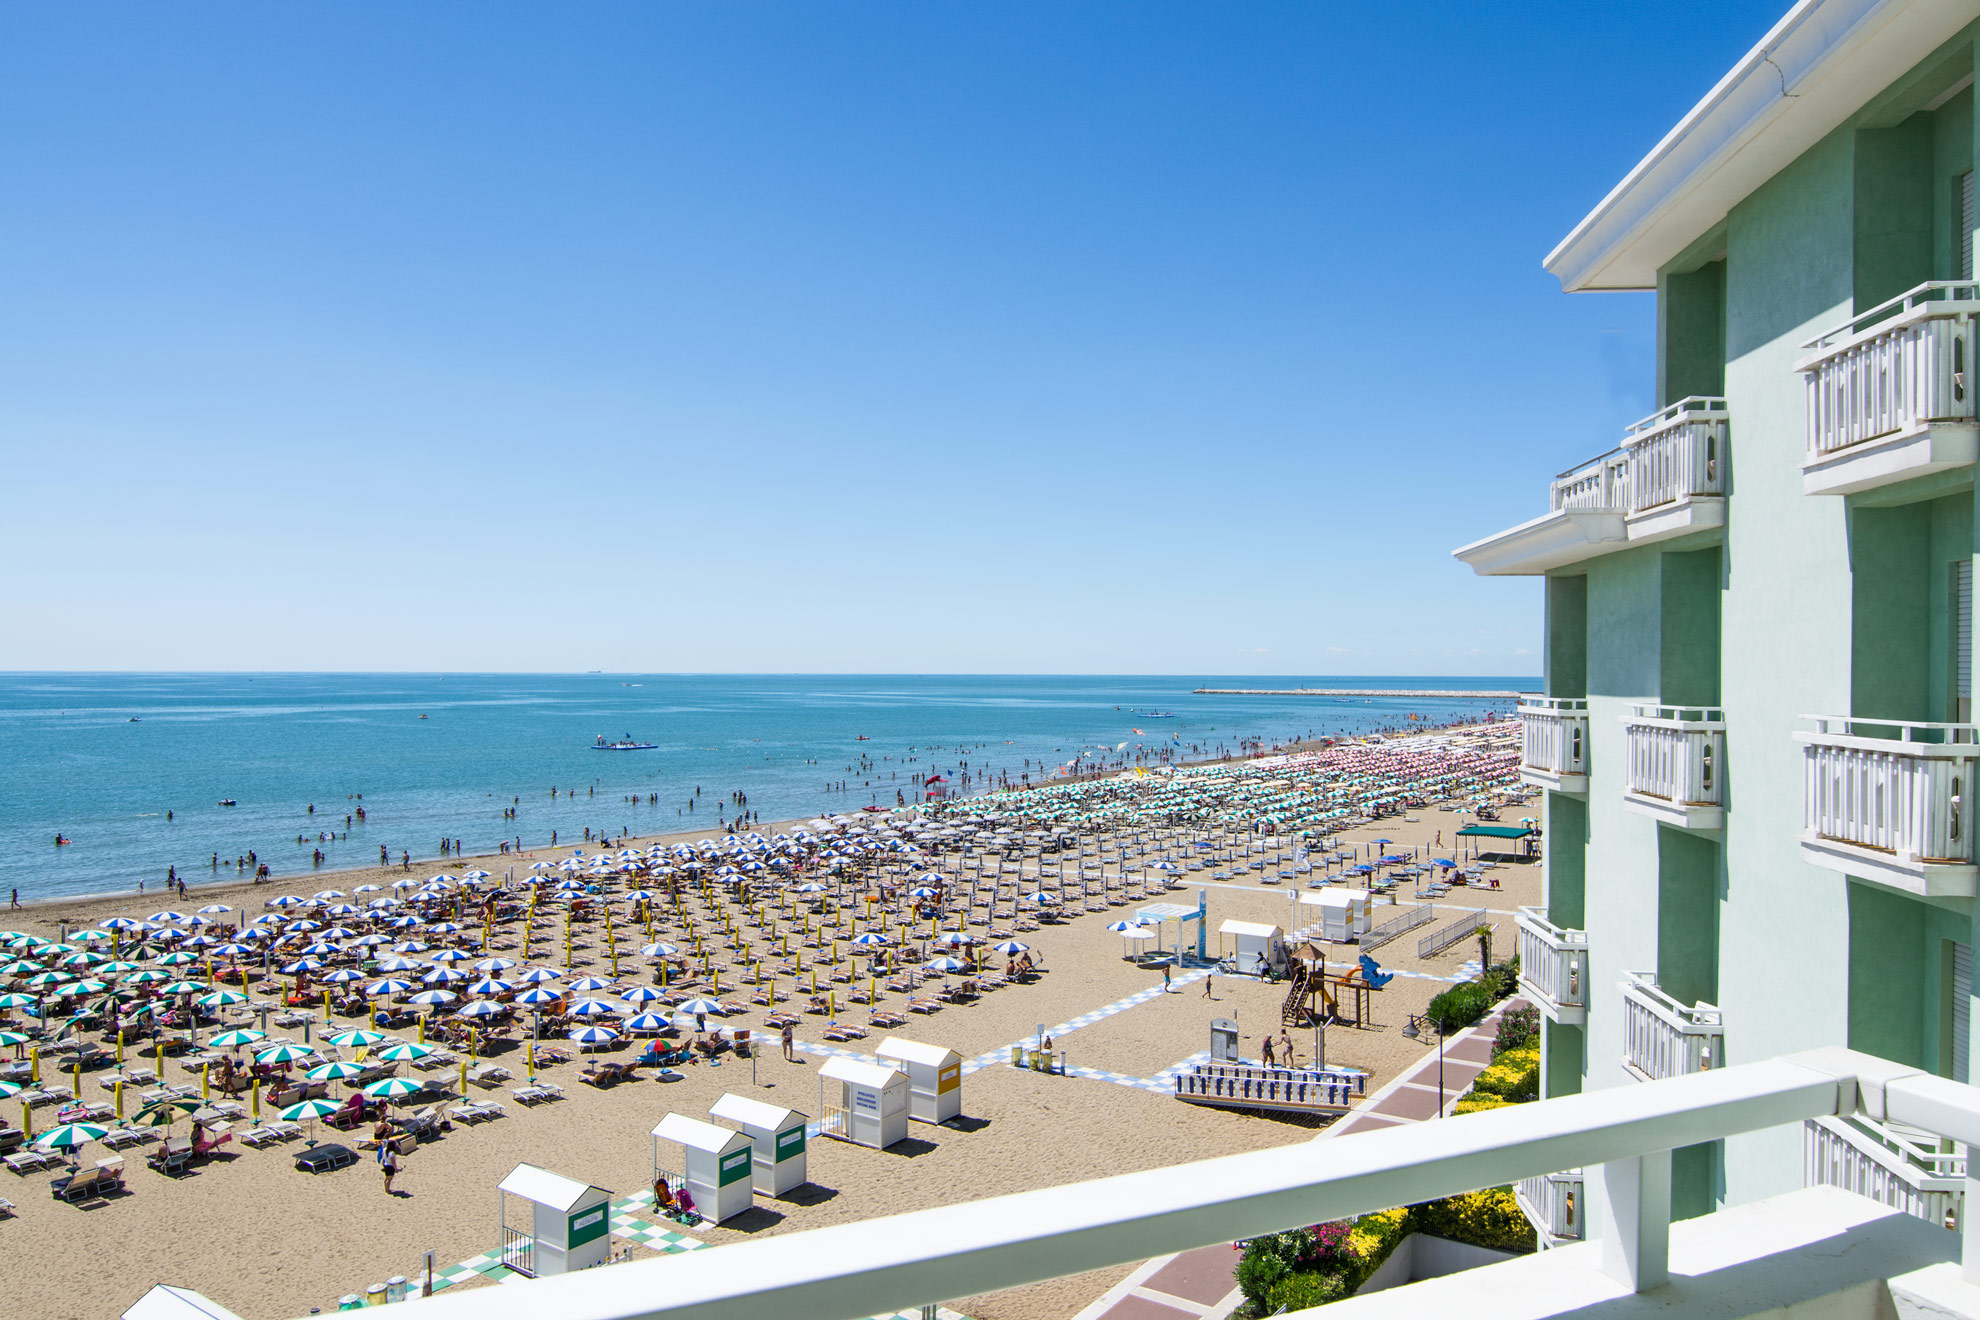 Hotel Montecarlo: three star seafront hotel in Caorle